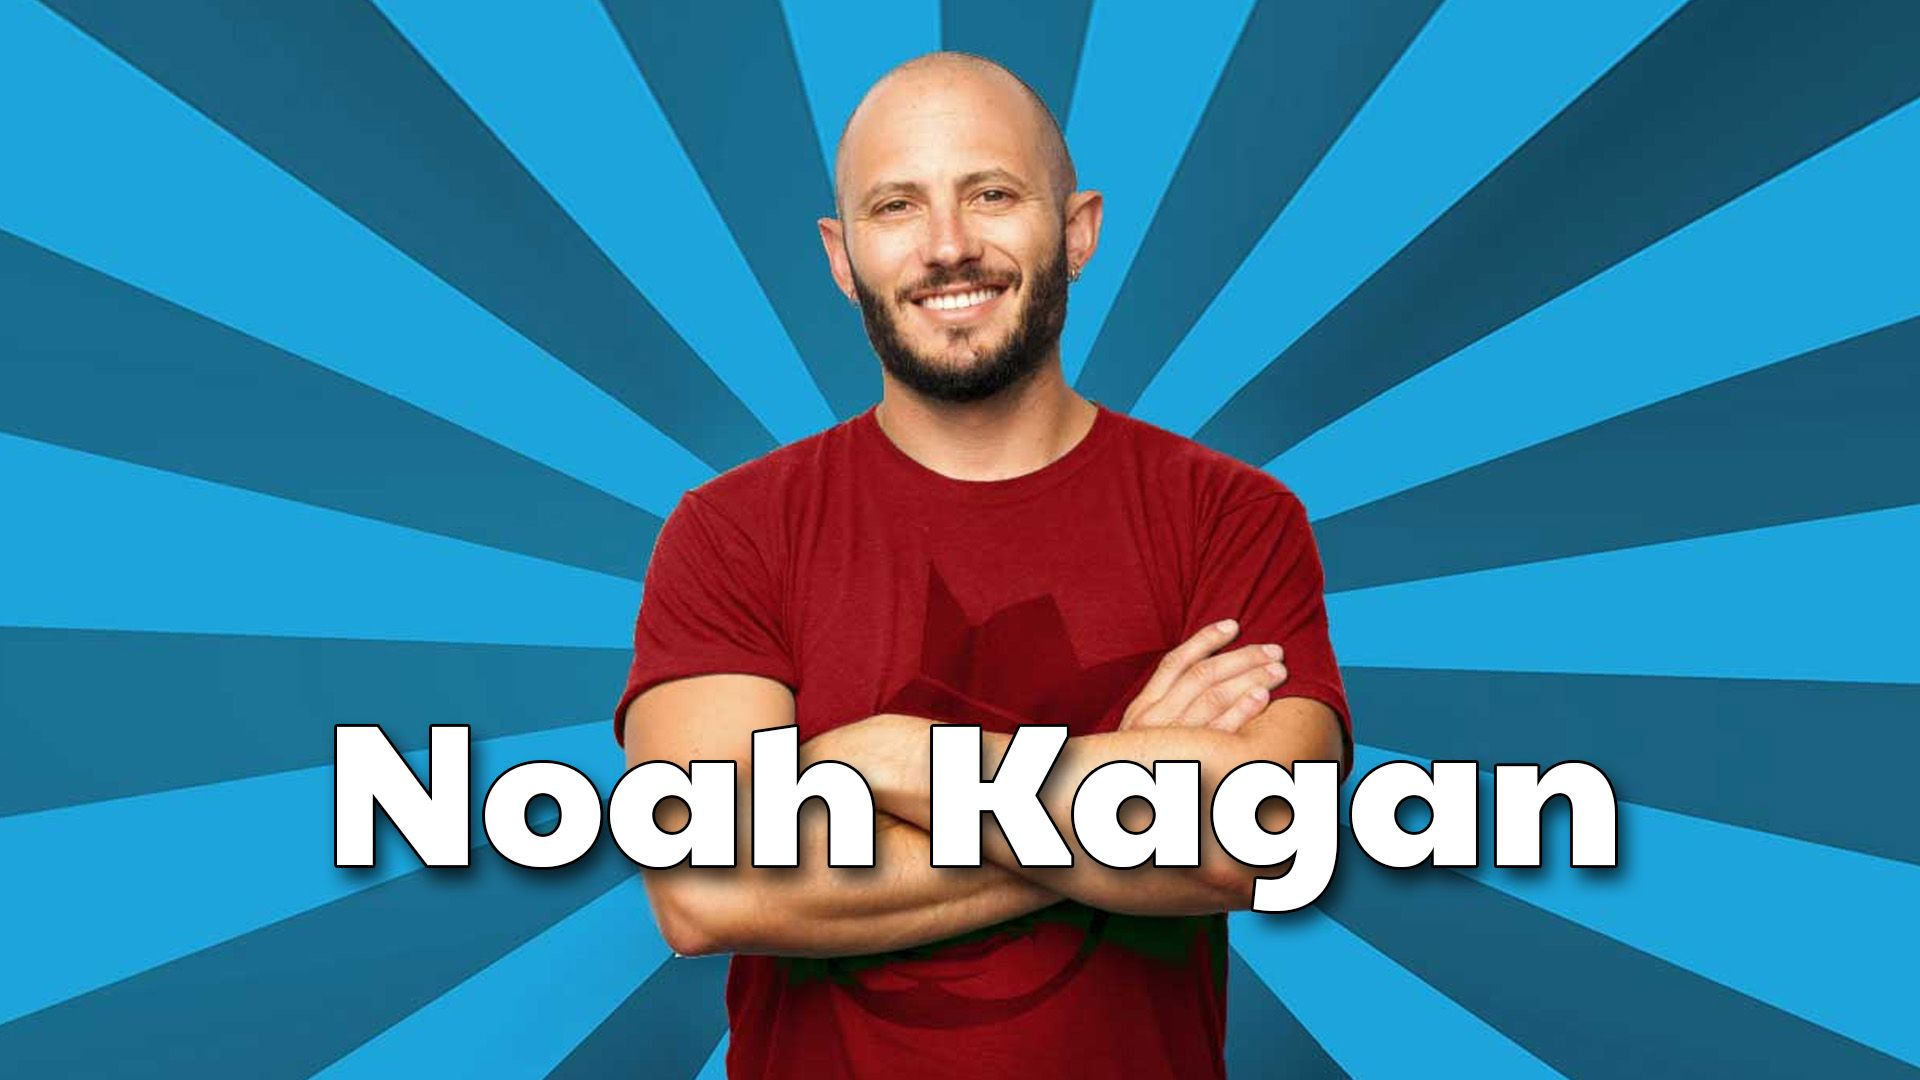 De 0 aux 200 premiers clients de Noah Kagan #GrowthHacking #WEbMarketing #FormationGrowthHacking #CentreDeFormationFrance #TunnelAARRR #AARRR #SocialMedia #CommunityManagement #SEO #acquisition #NoahKagan #AppSumo